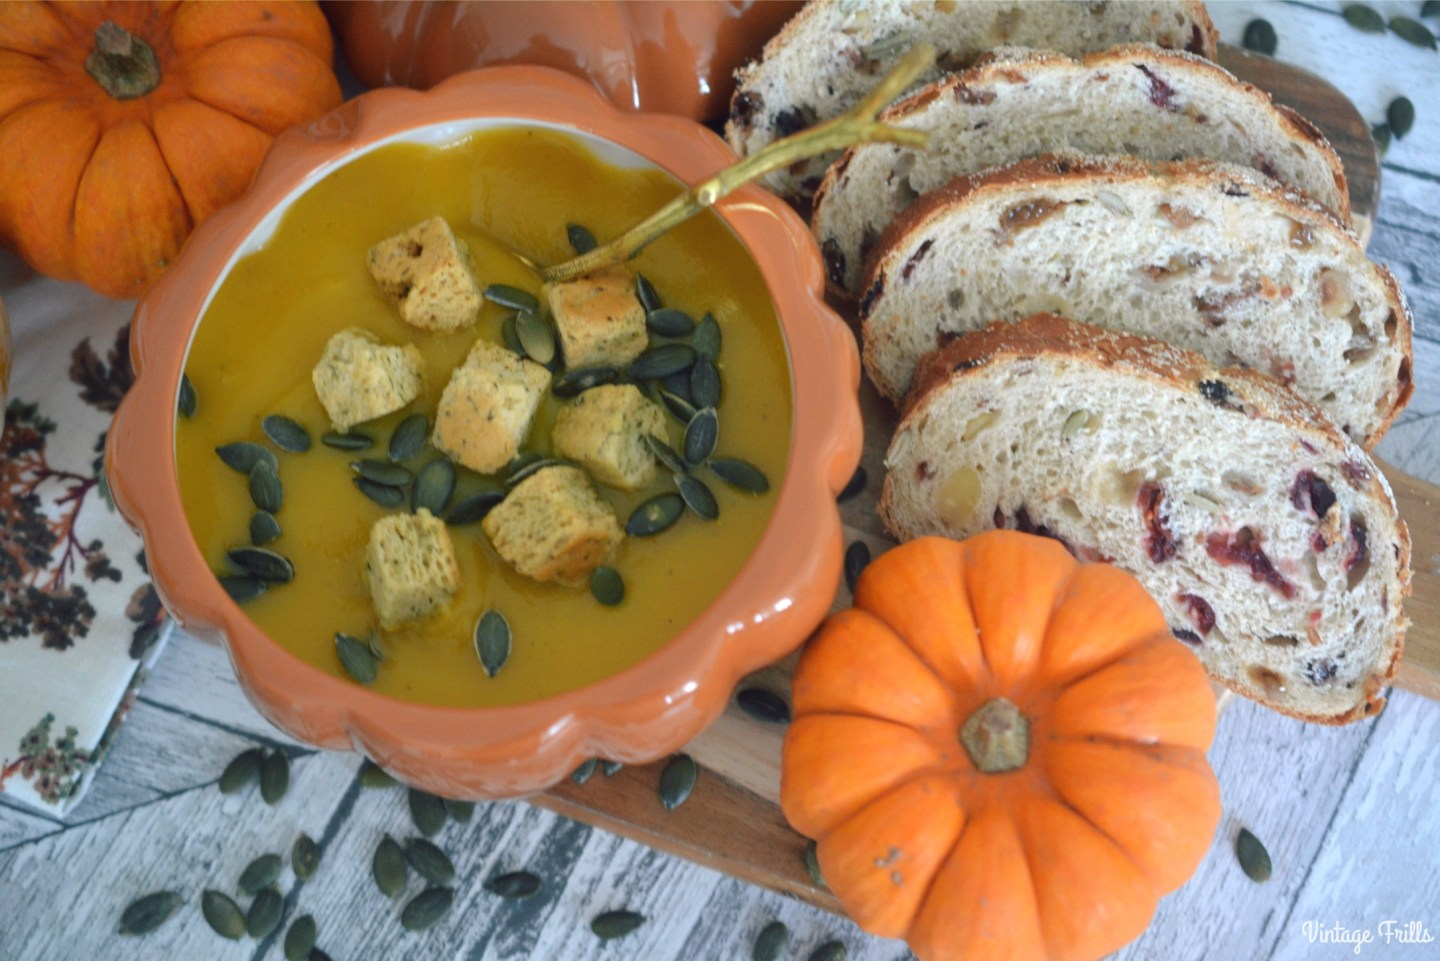 Delicious Pumpkin and Squash Autumn Soup